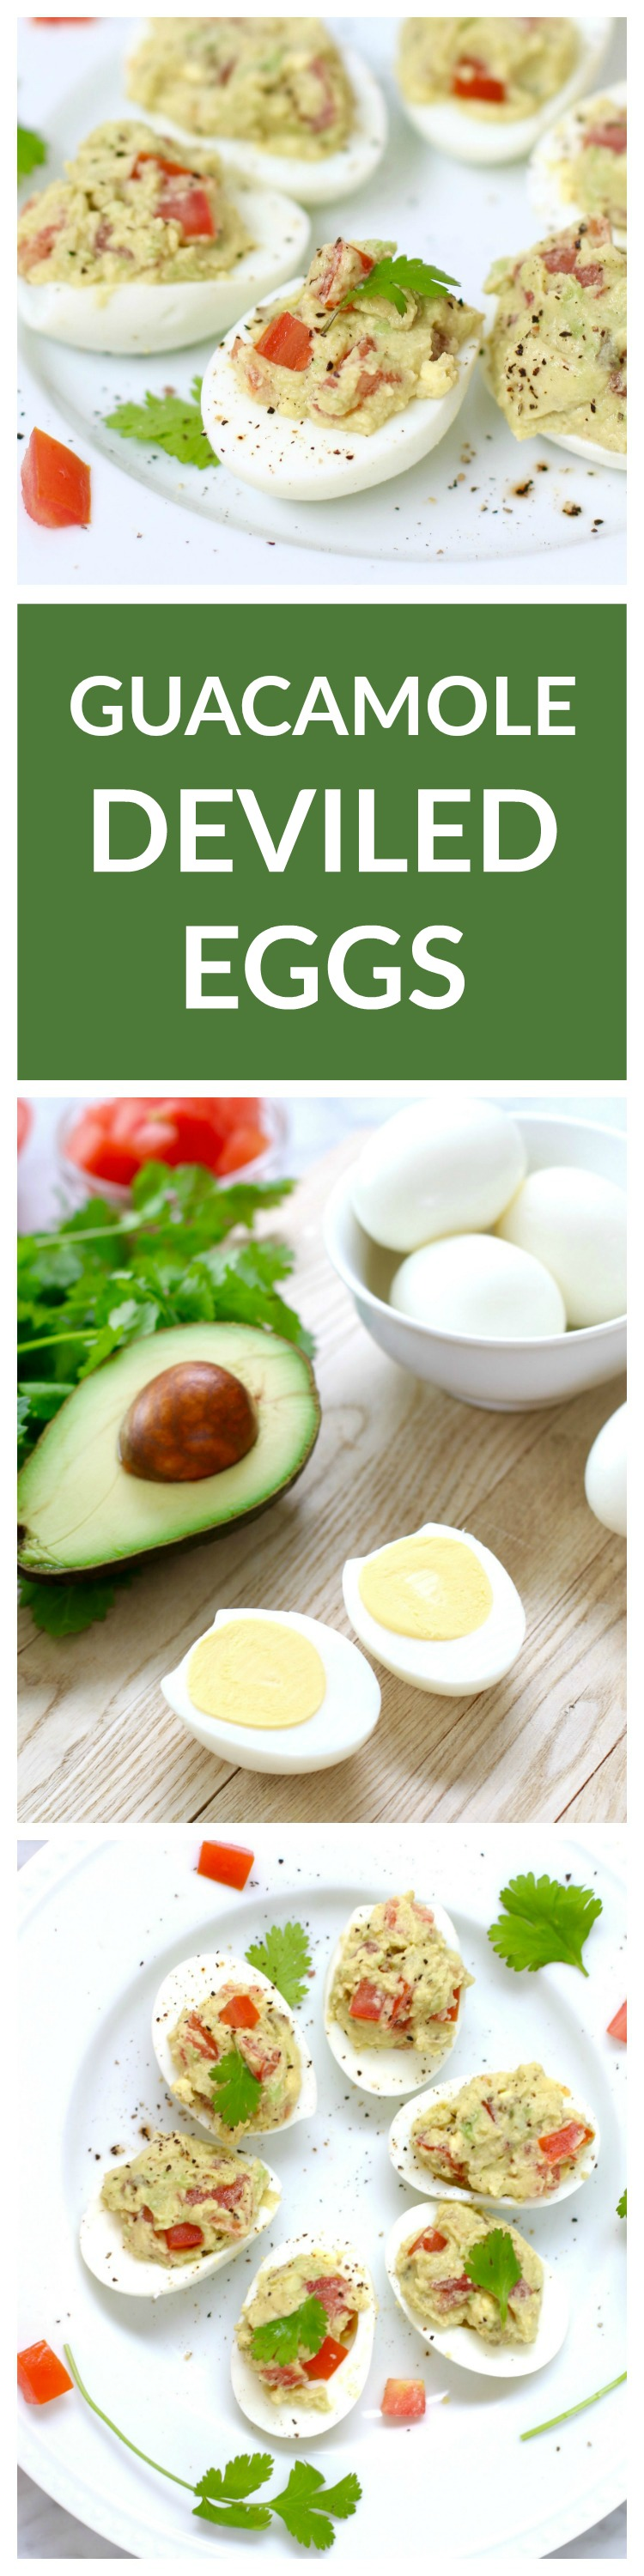 Guacamole Deviled Eggs - classic deviled eggs with avocado and tomatoes!